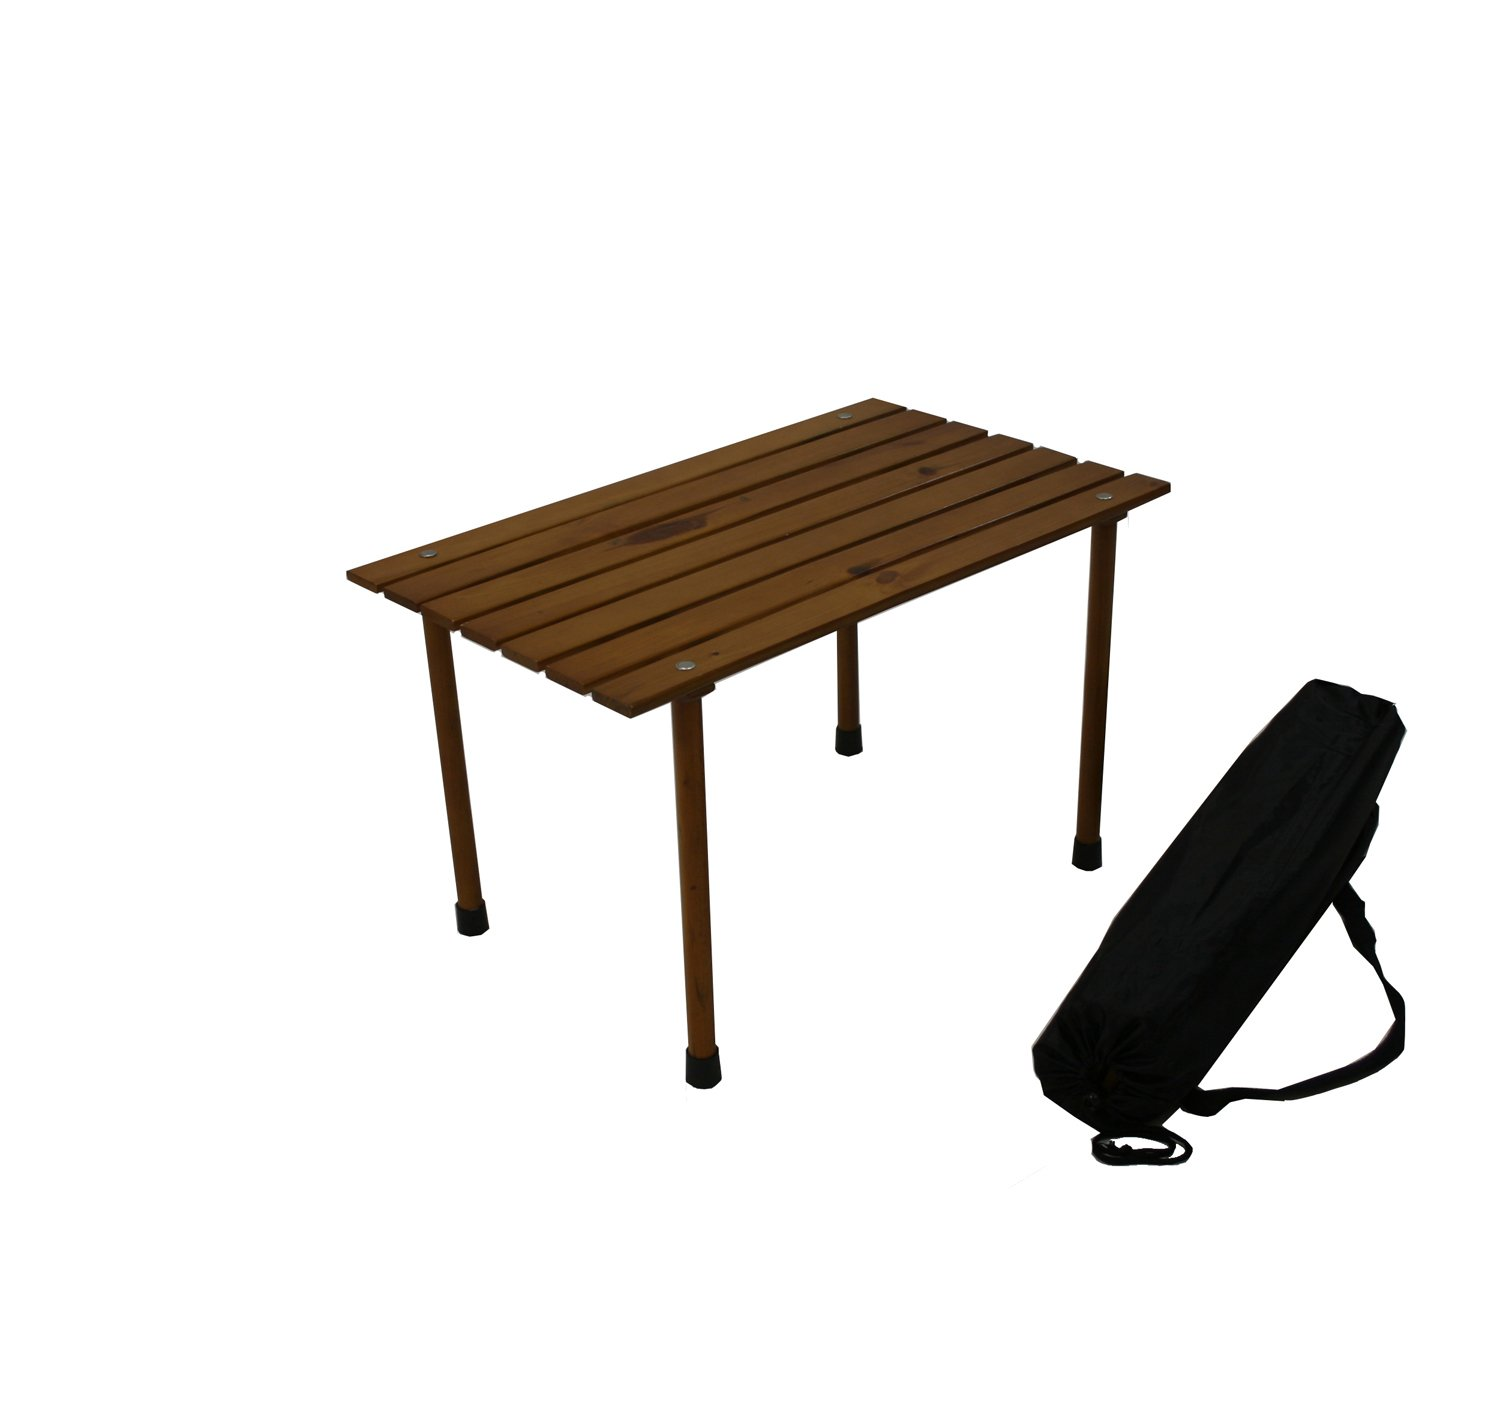 CDM product Table in a Bag LLW1527 Small Low Wood Portable Table with Carrying Bag, Brown big image